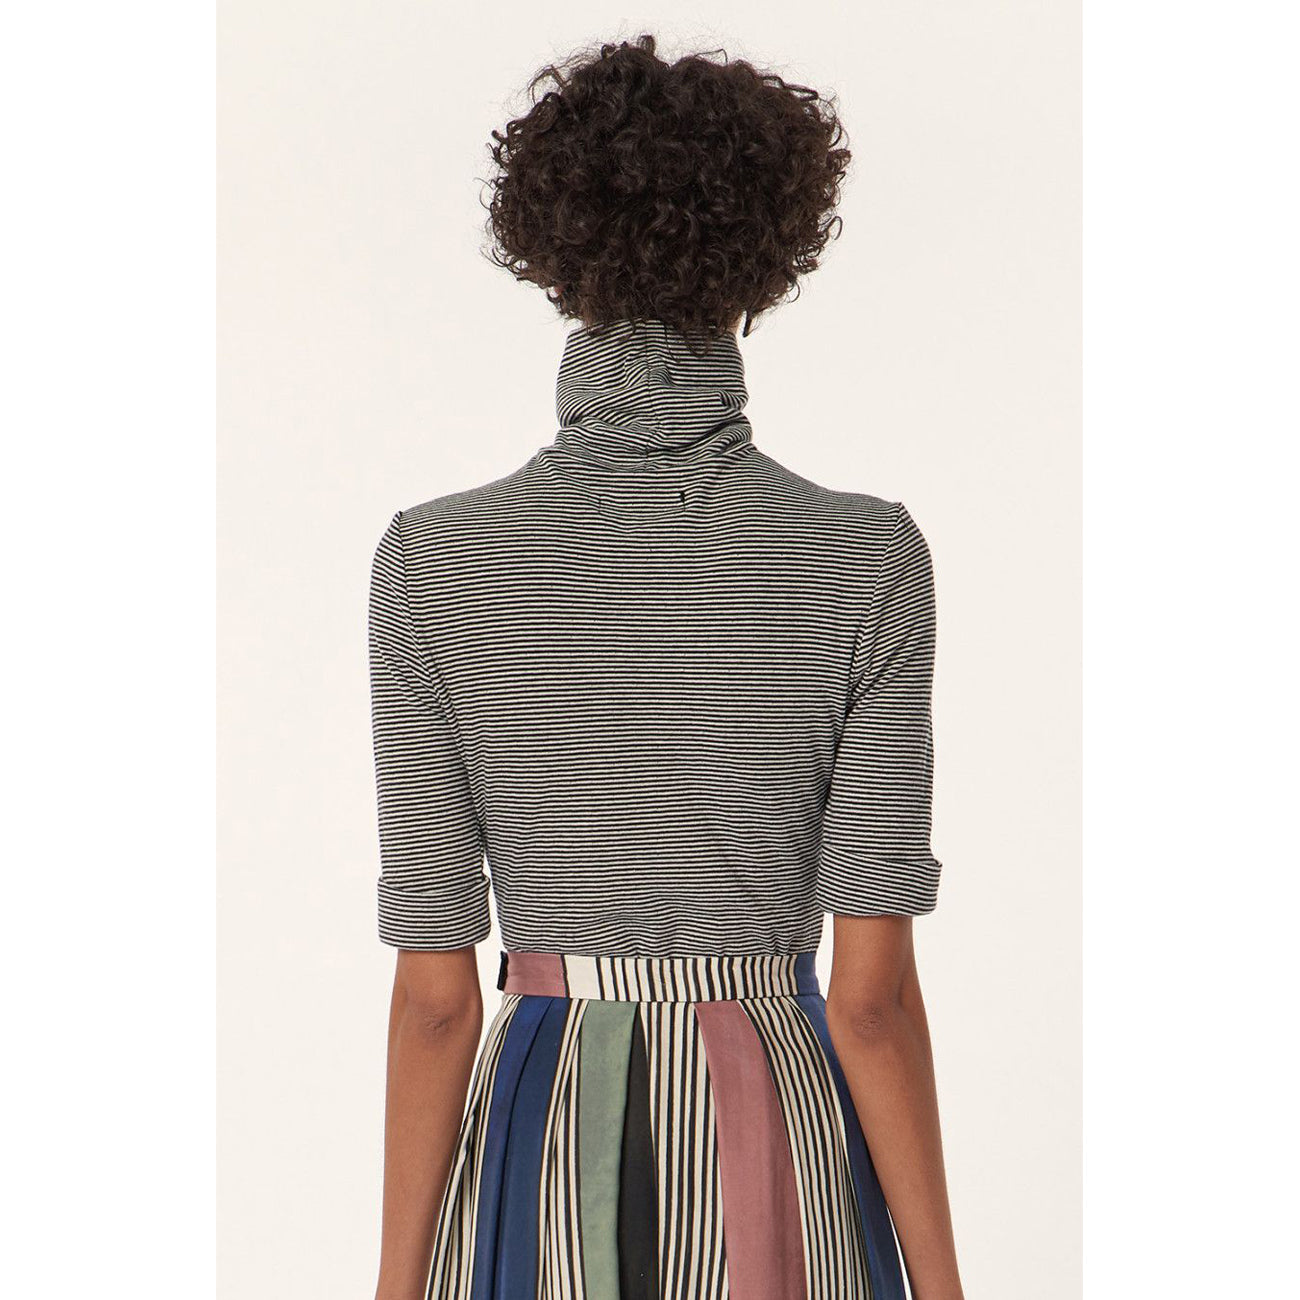 Mara Hoffman Angela Organic Cotton Turtleneck